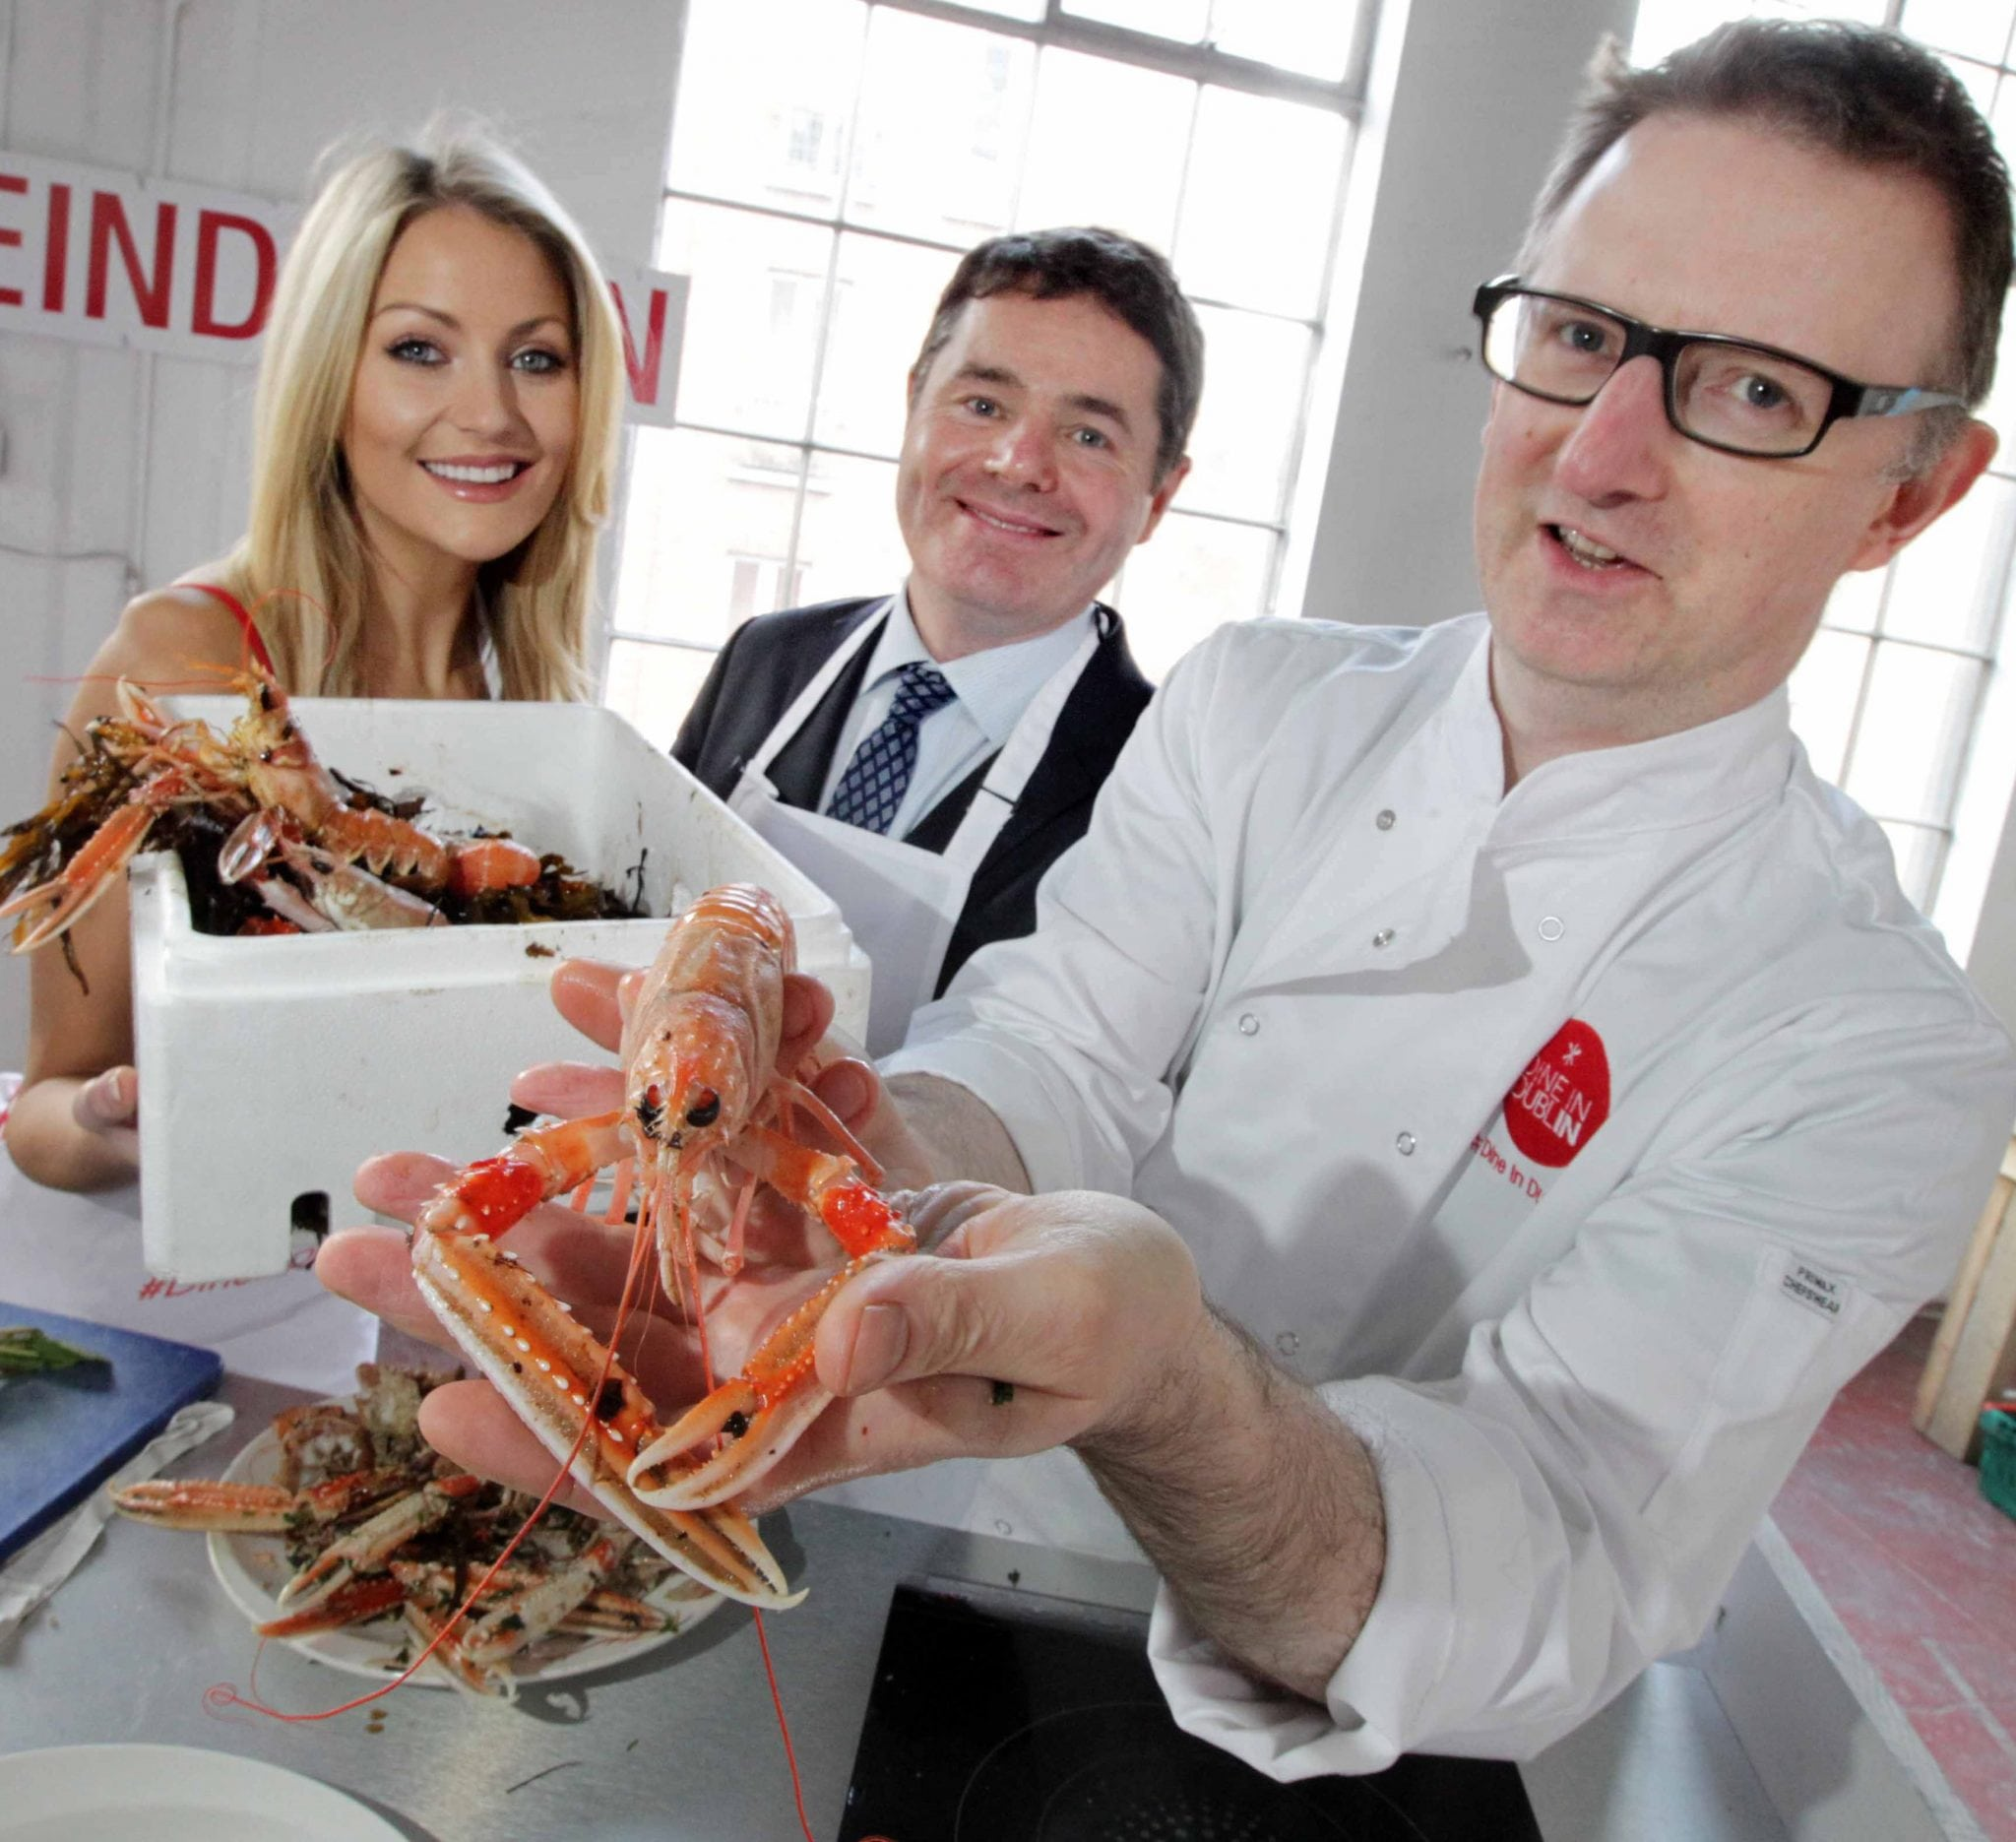 NO FEE 16 Dine in Dublin launch